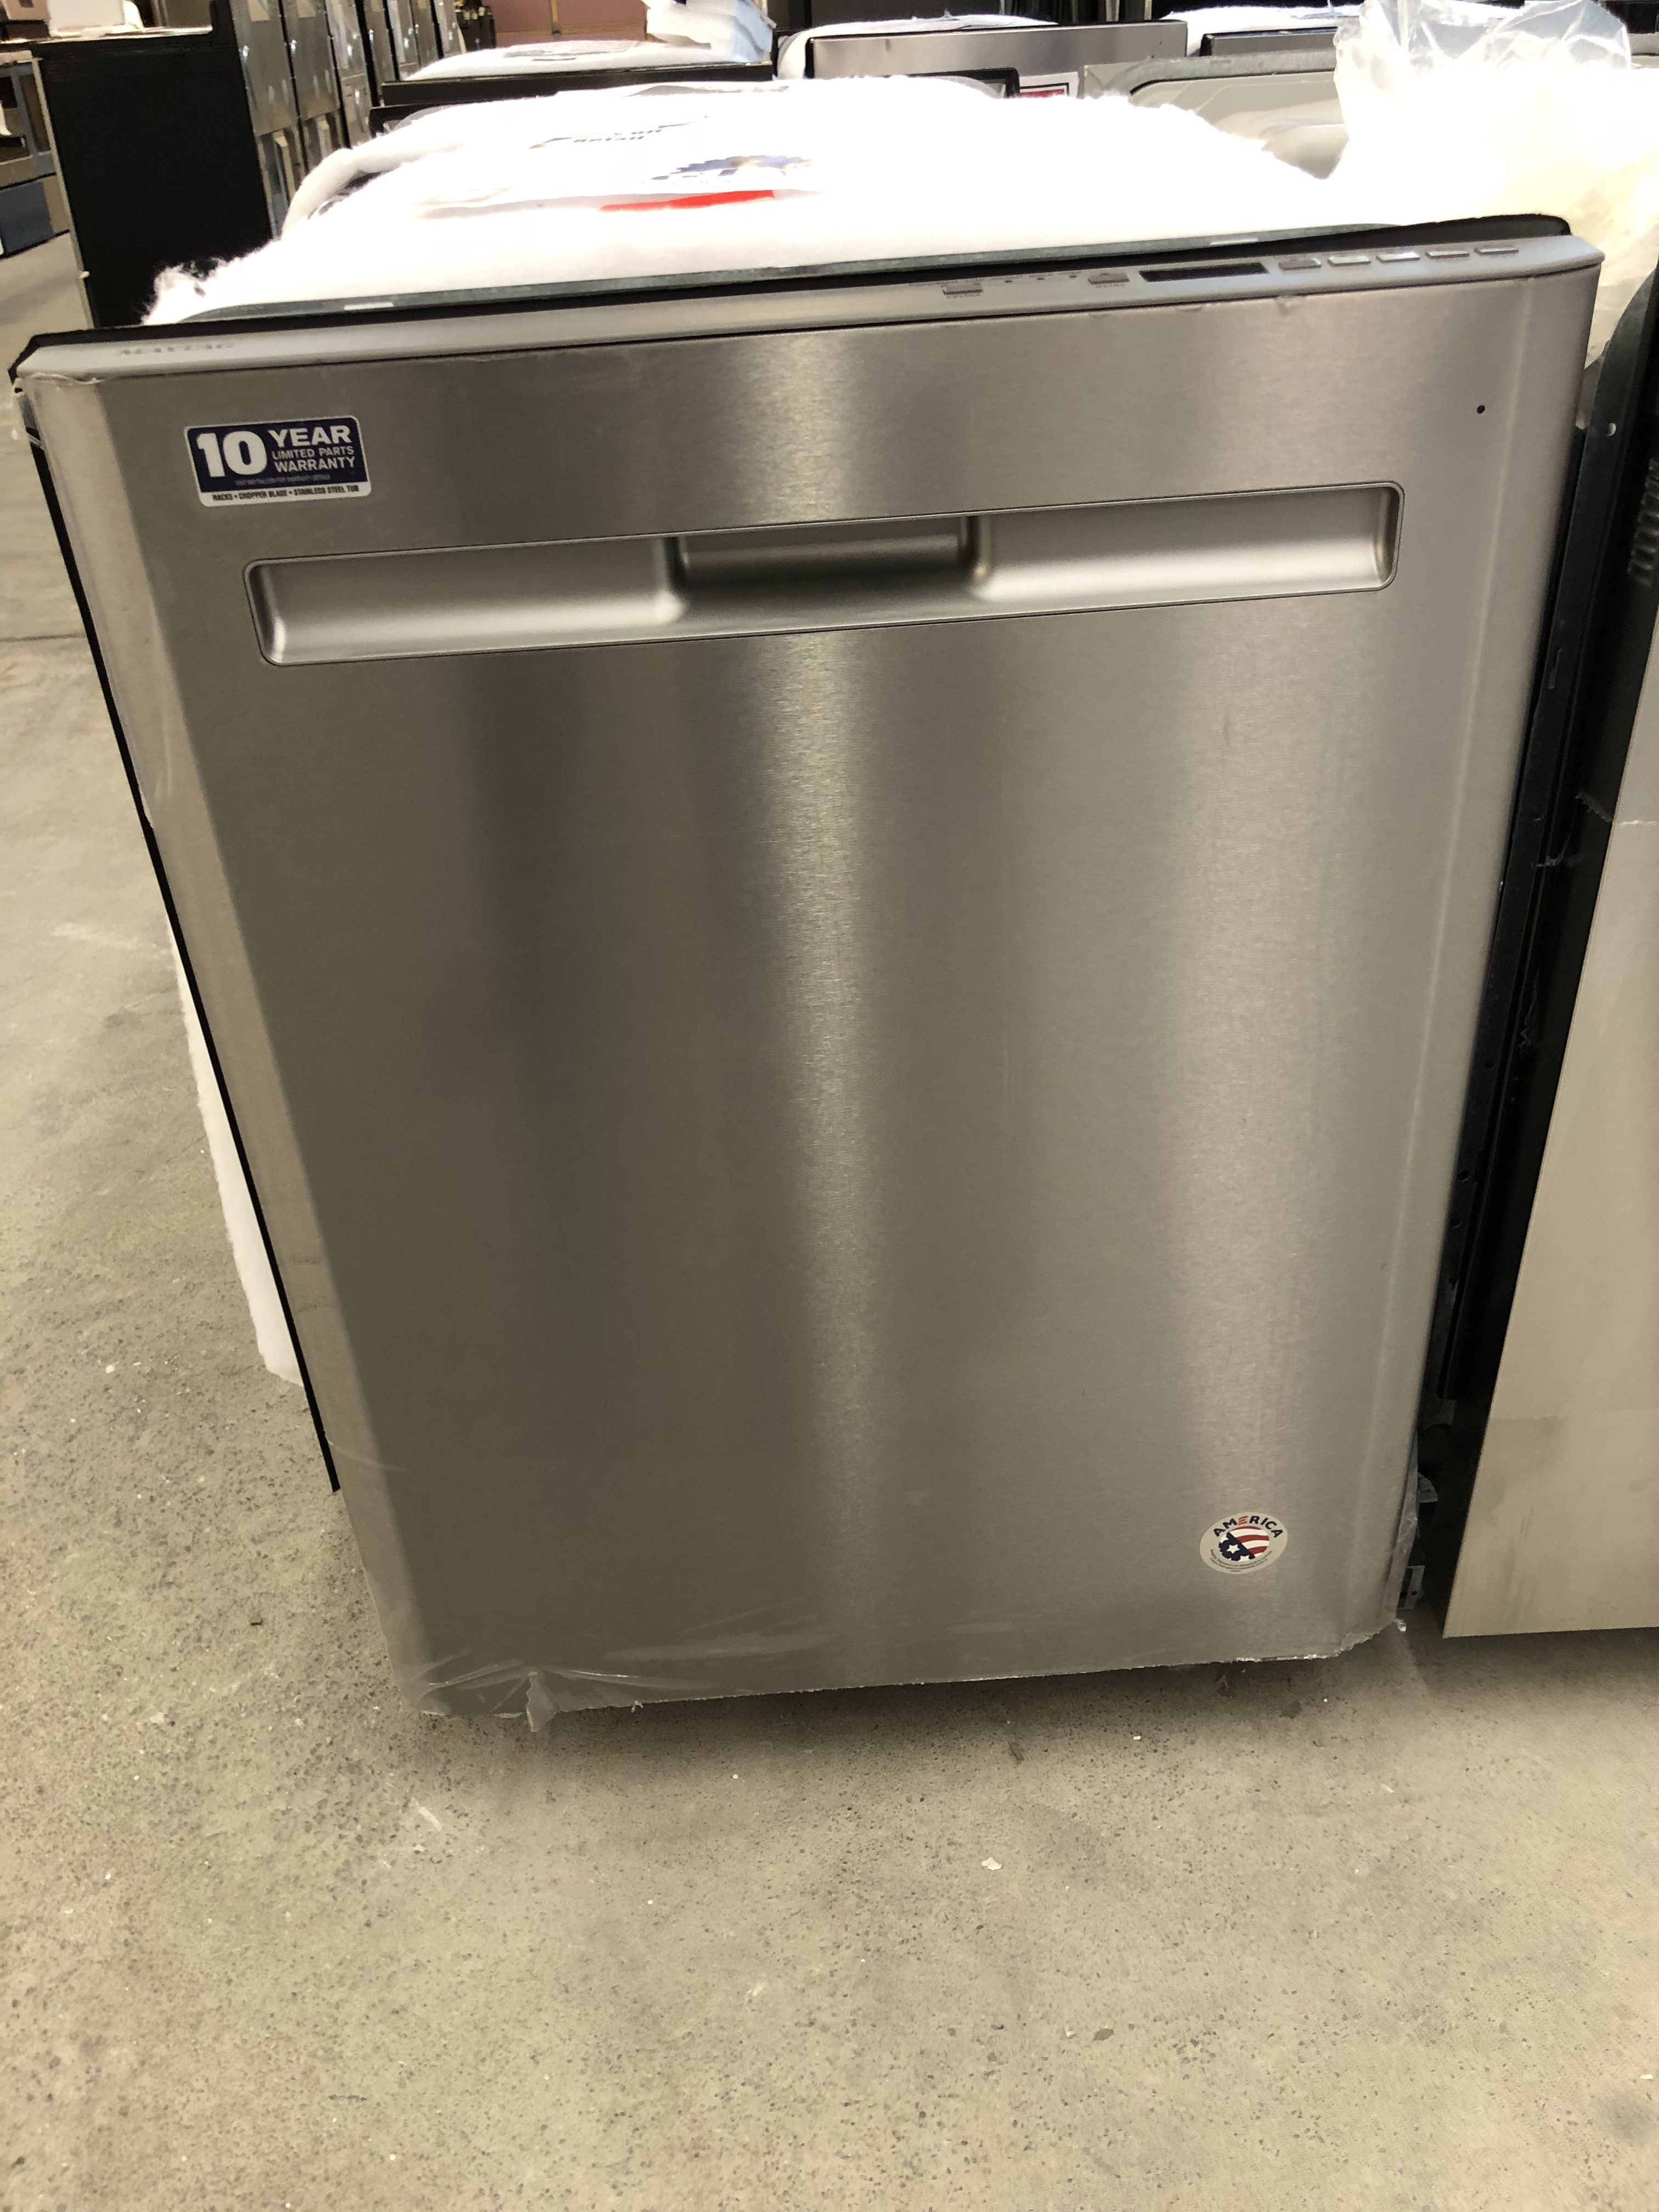 Maytag Dishwasher Ss Gfy Appliance Repair Amp Showroom